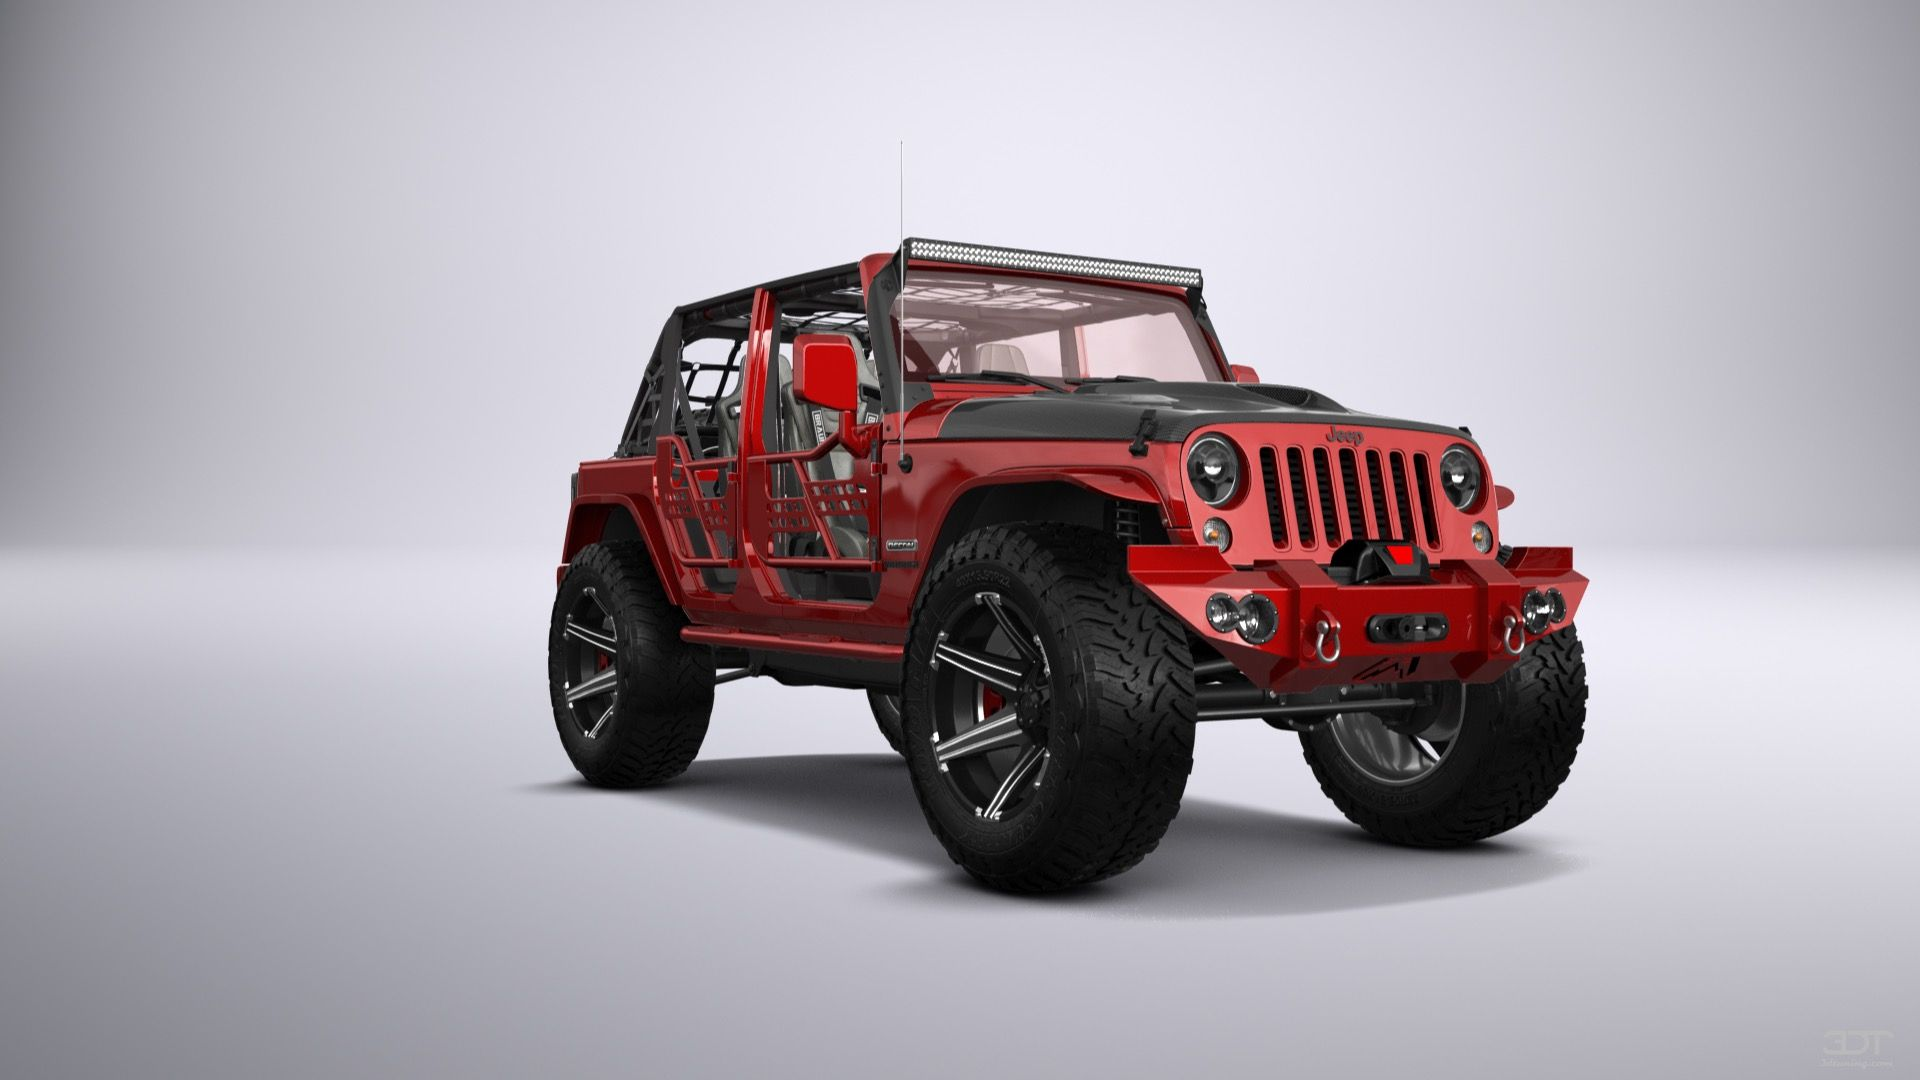 Checkout My Tuning Jeep Wranglerunlimitedrubiconrecon 2017 At 3dtuning 3dtuning Tuning Jeep Jeep Wrangler Unlimited Wrangler Unlimited